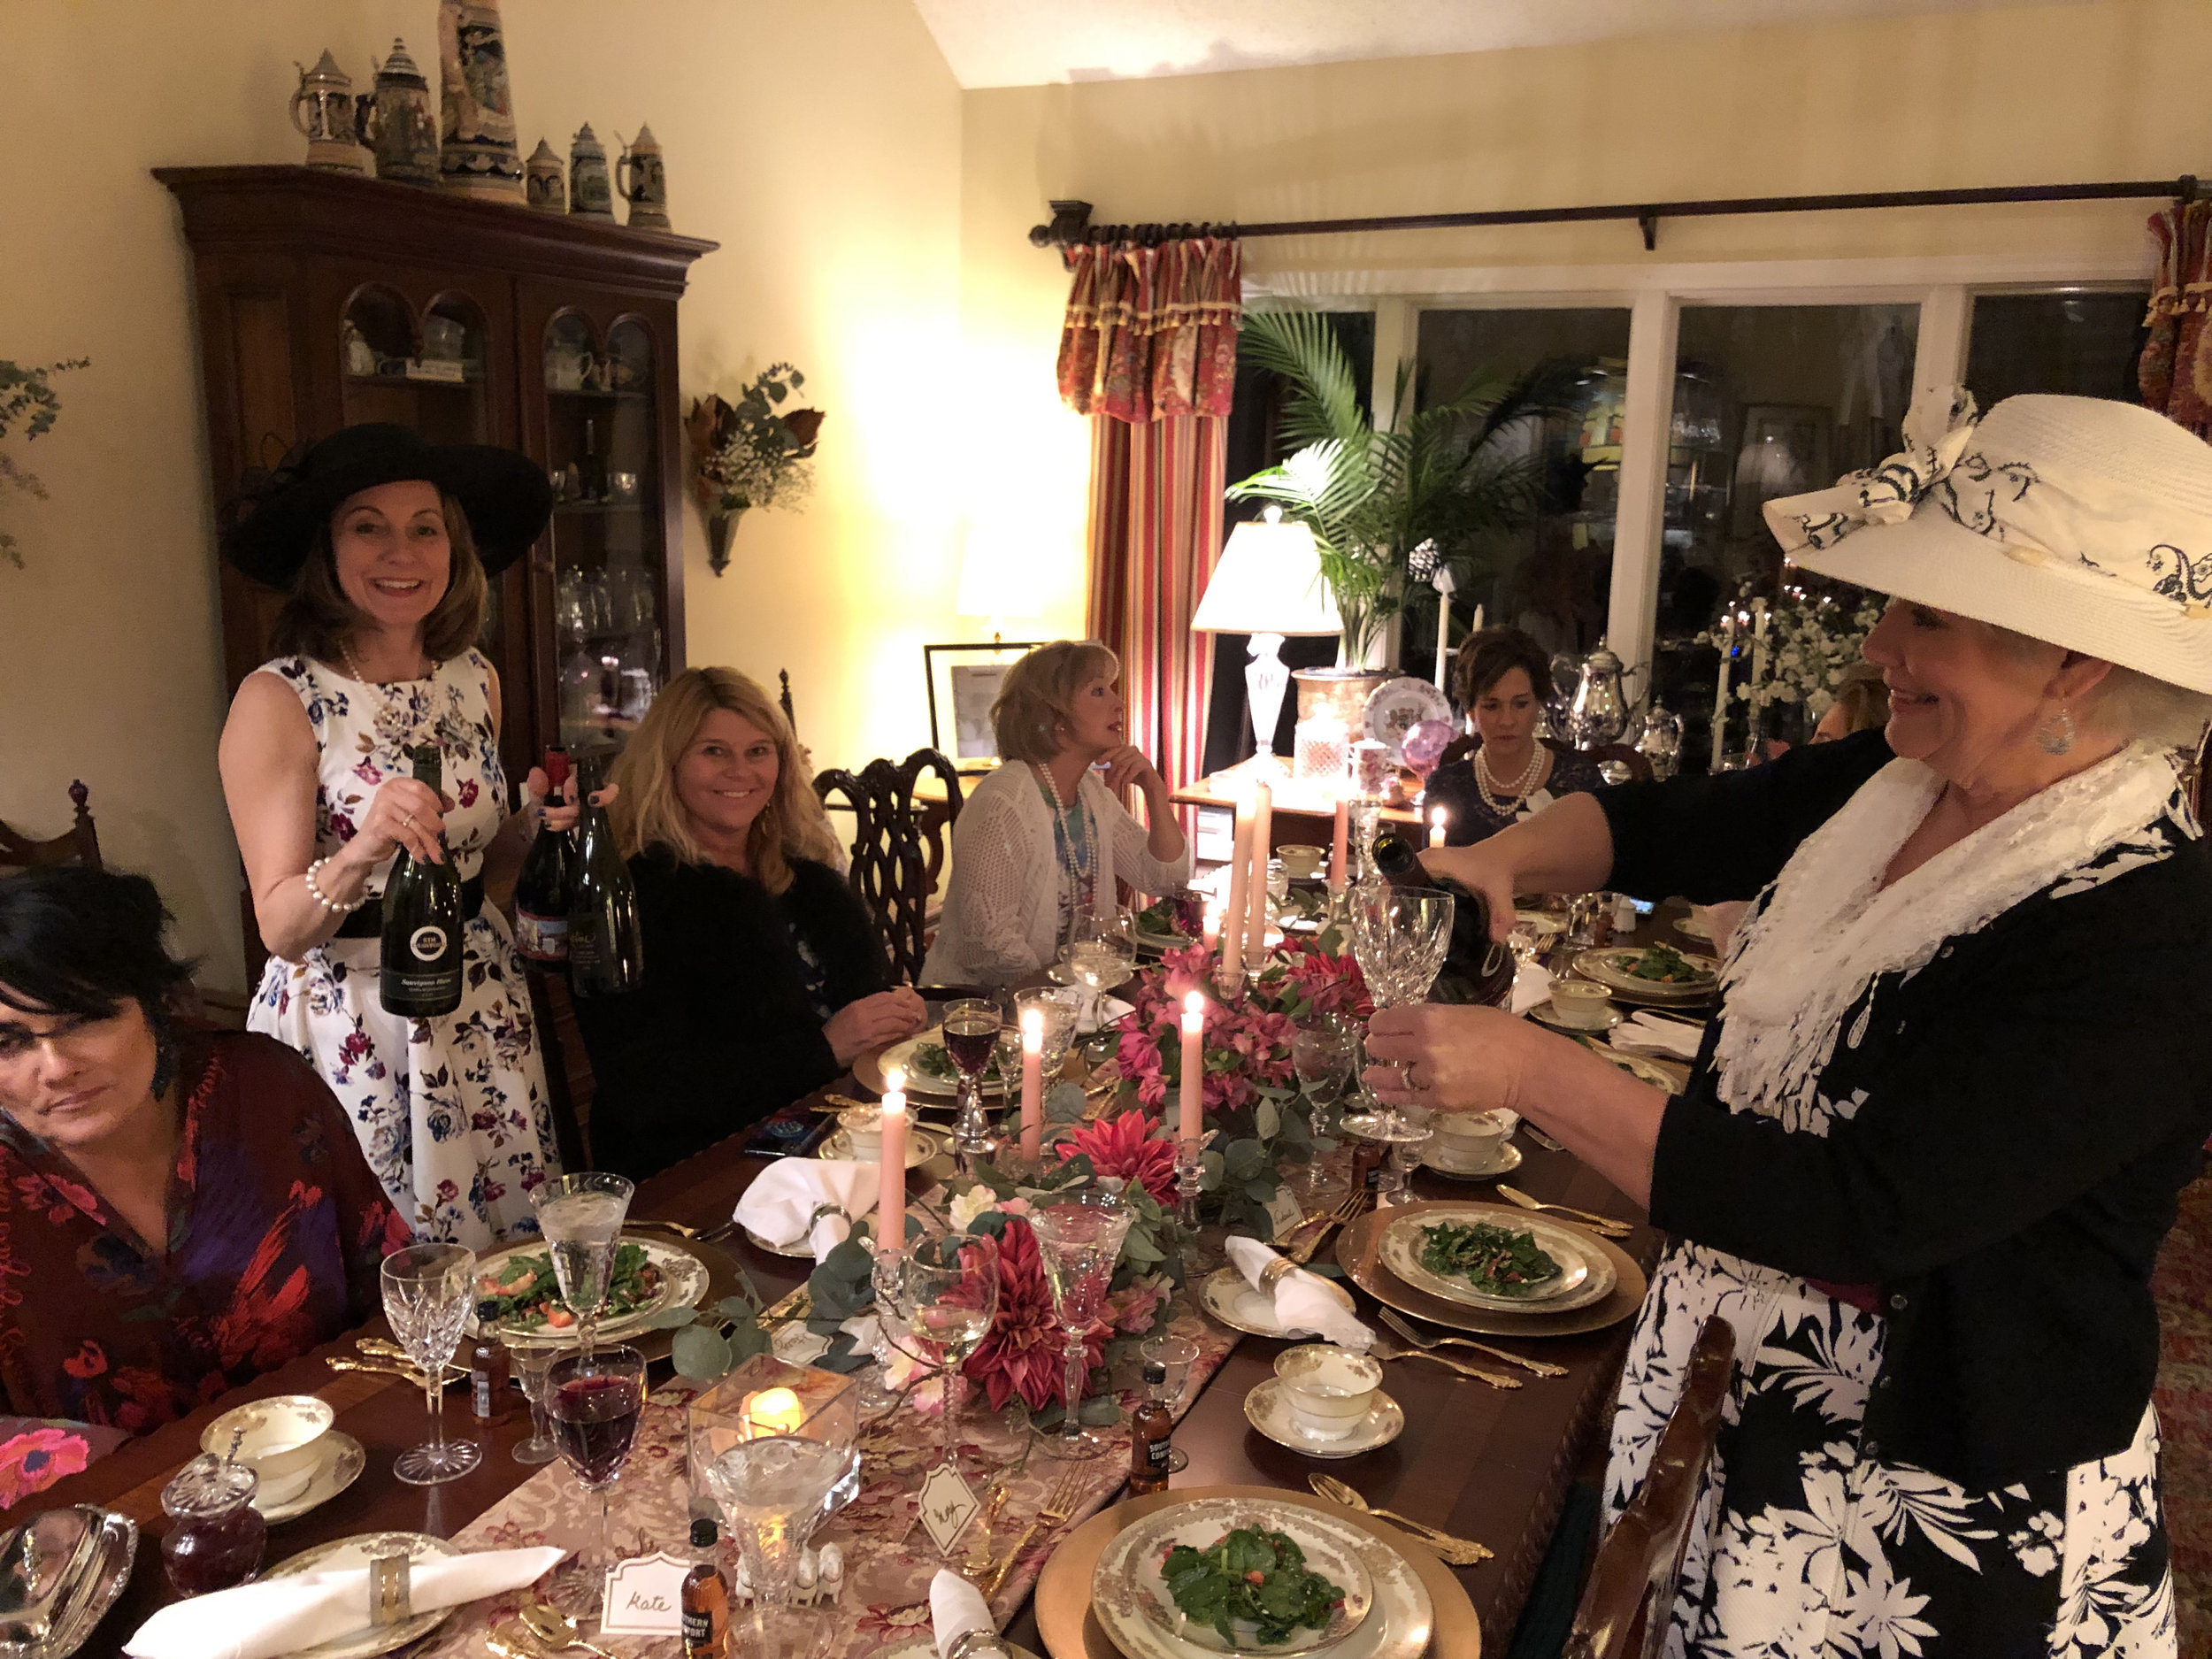 teri_whiskeyinateacup_W3BookClub_spiritedtable_photo28.jpg